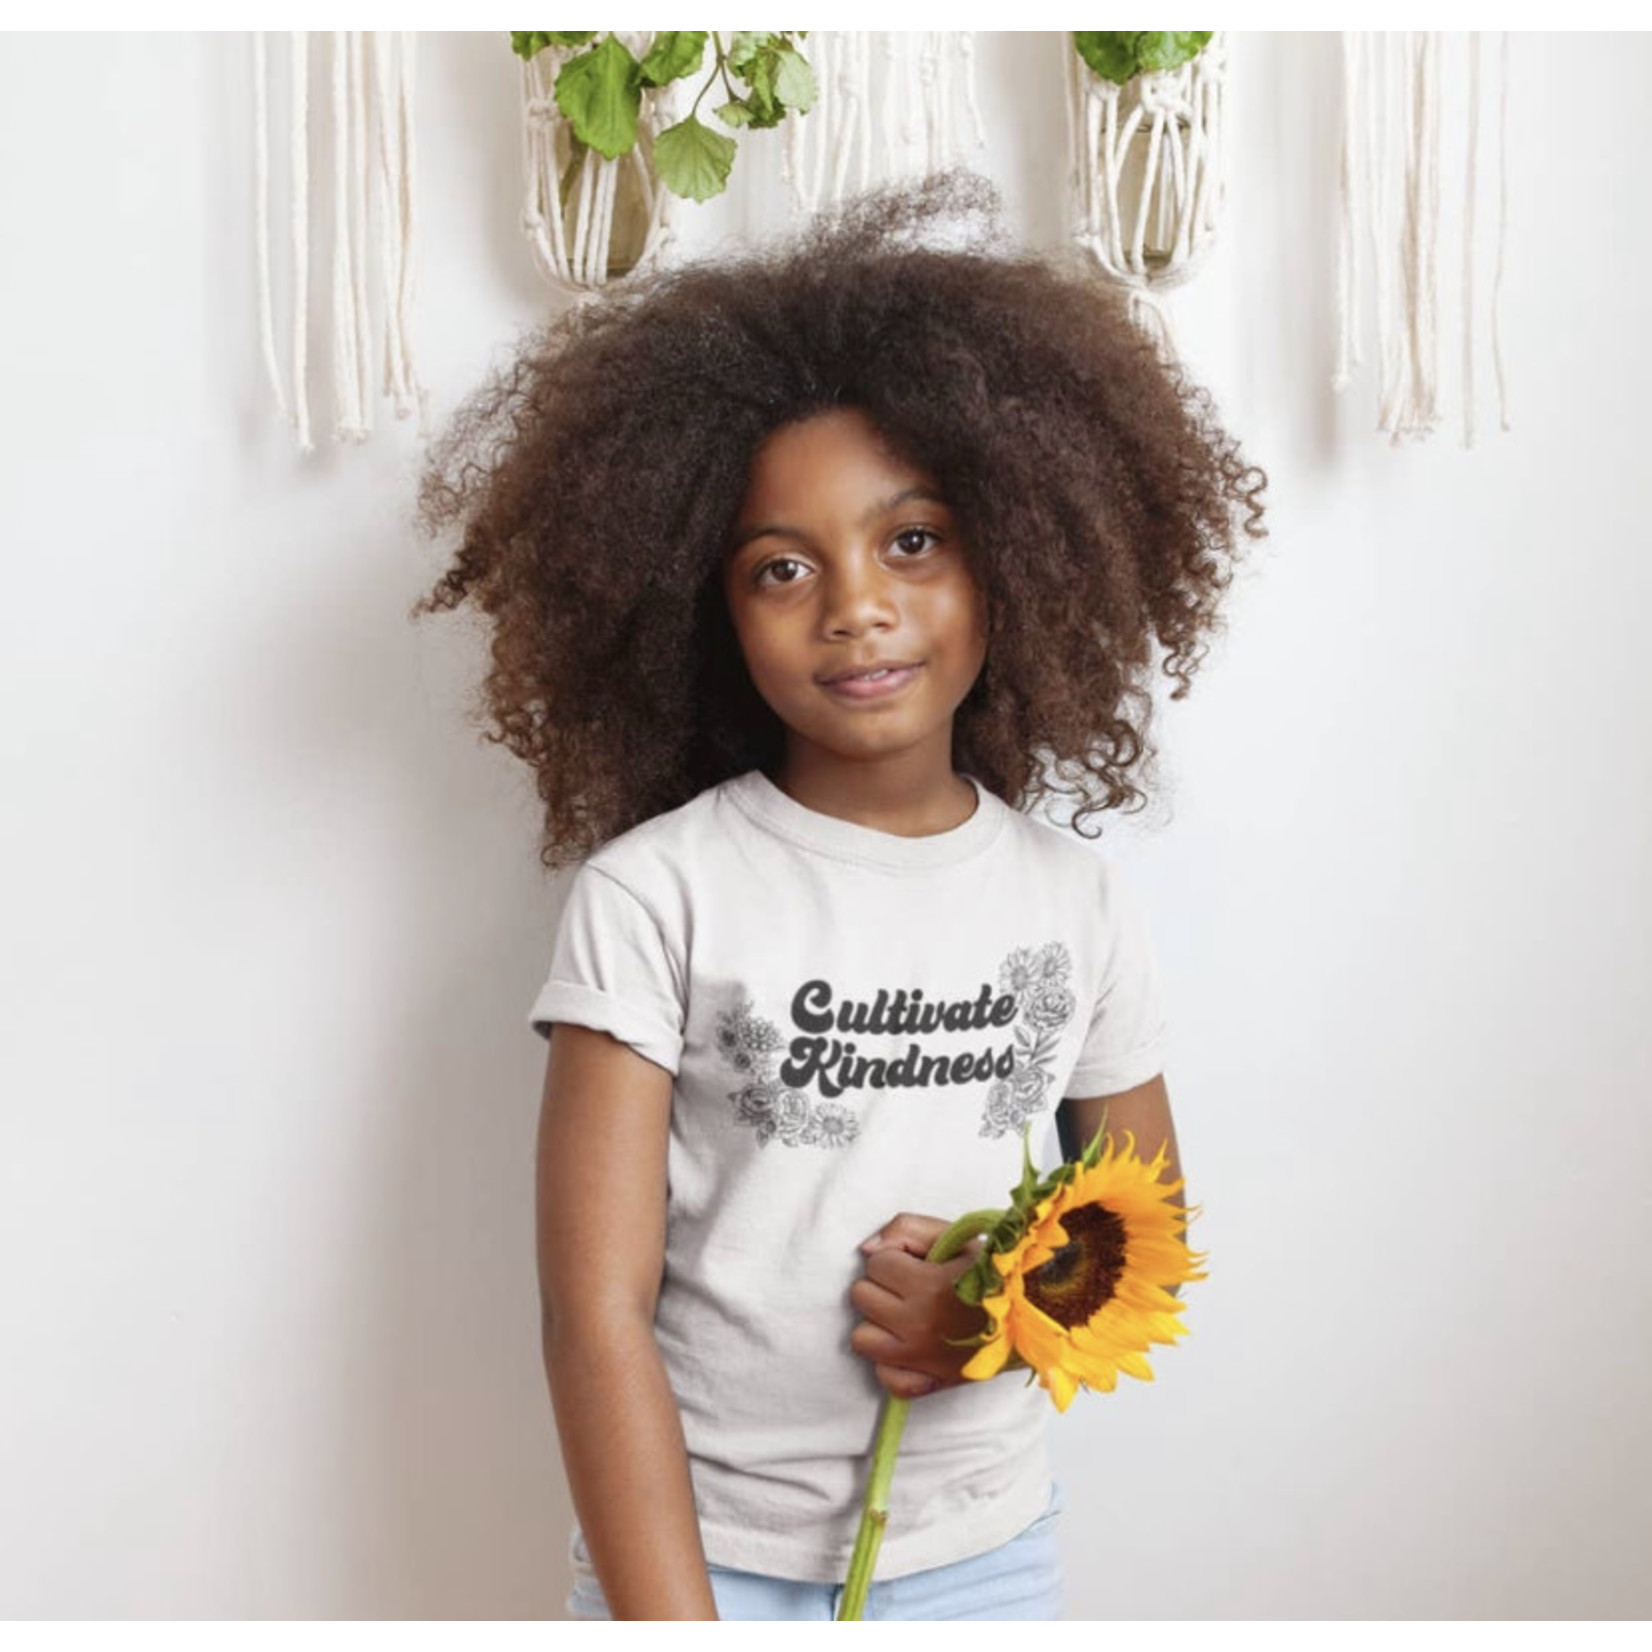 Funnel cake tree Funnel cake tree| Small cultivate kindness youth graphic tee